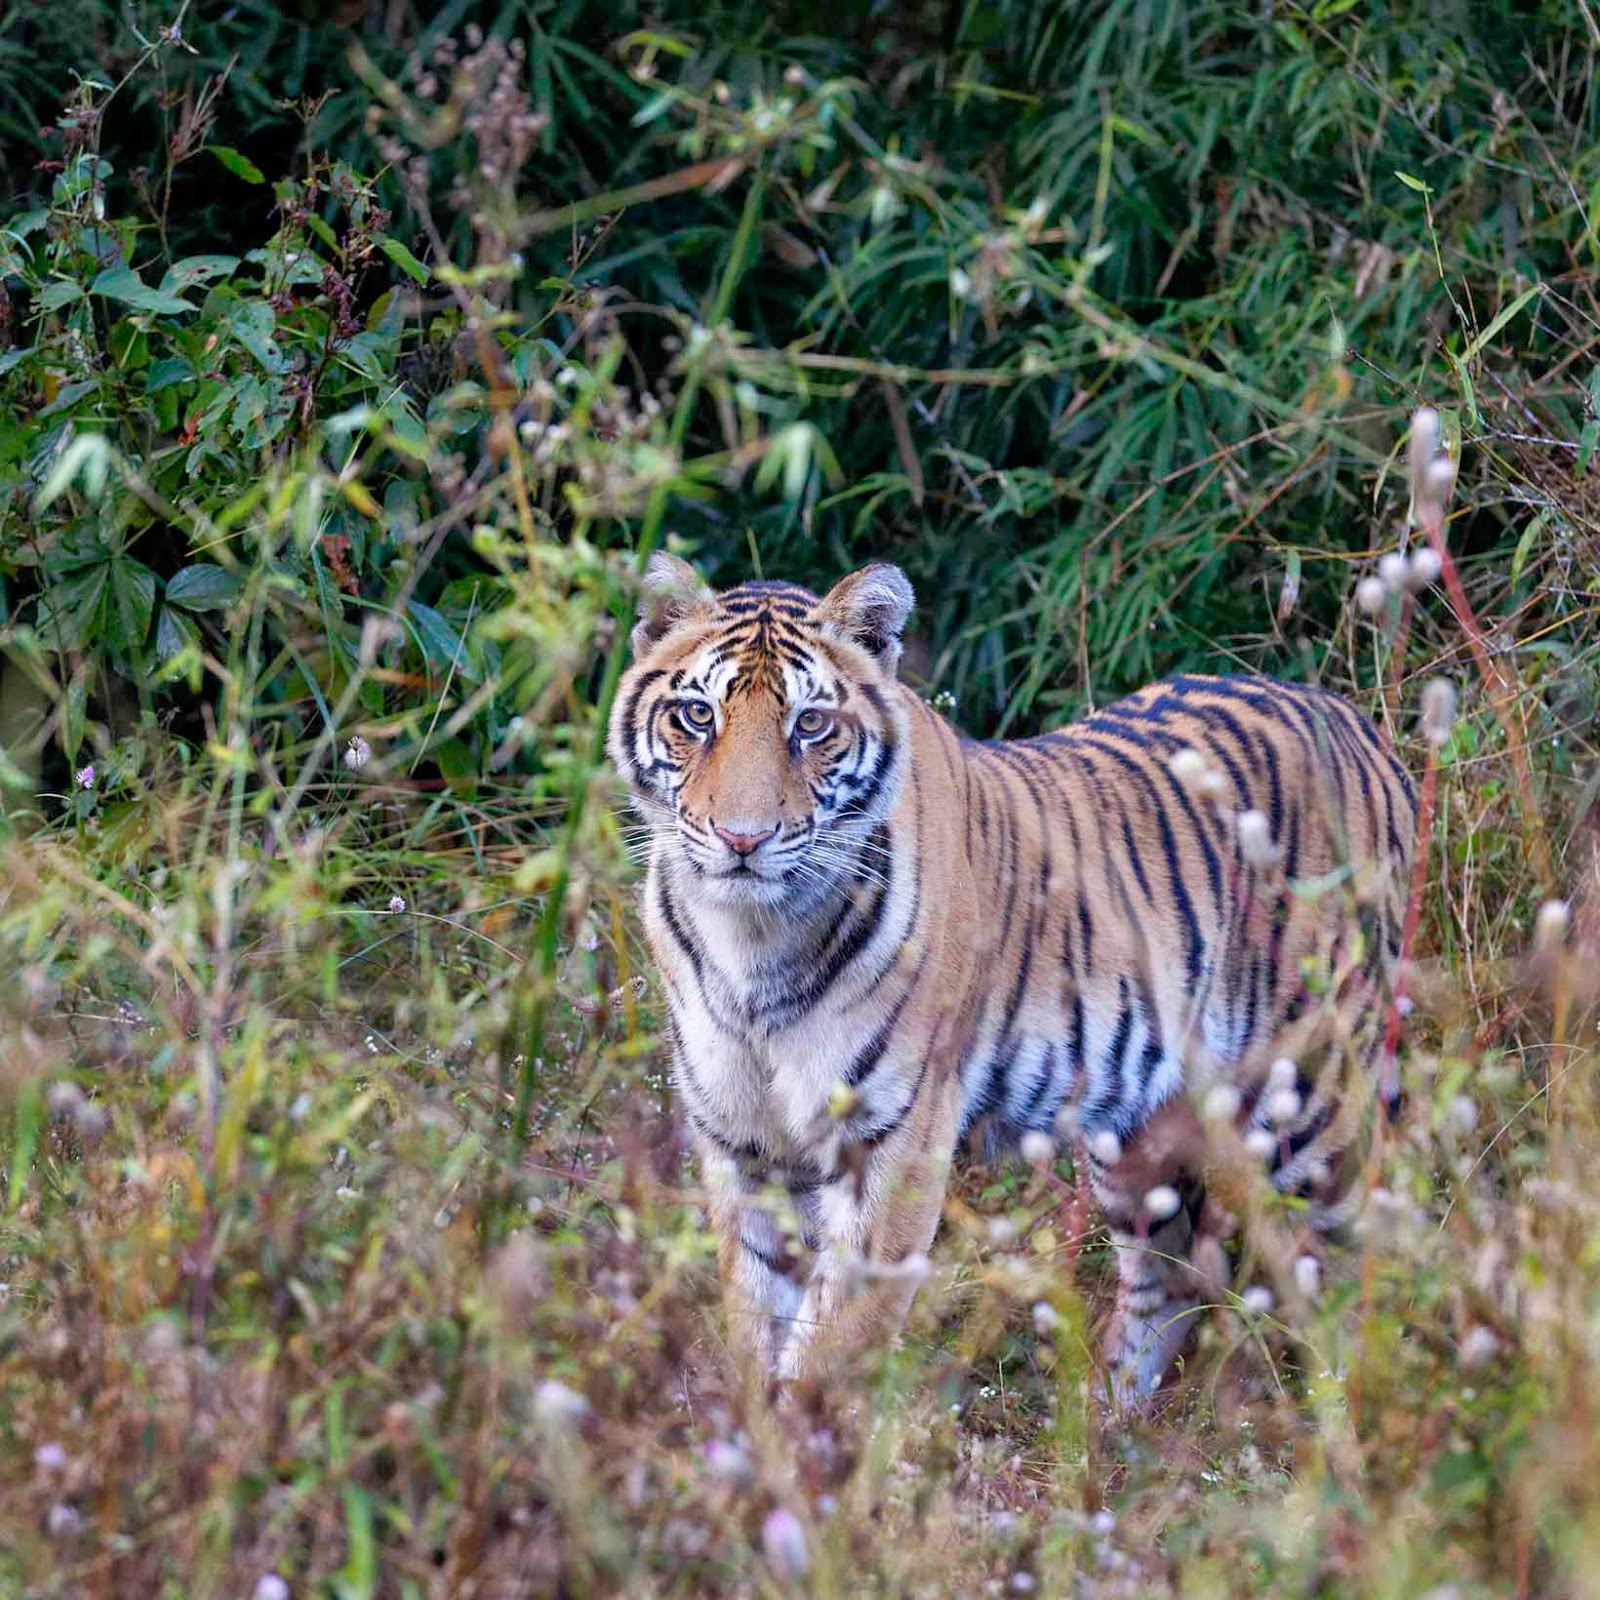 wildlife conservation in india हाथी संरक्षण परियोजना, project elephant    elephant reserves    wildlife conservation in india    environment and ecology वन्य जीव संरक्षण परियोजनाए    wildl.